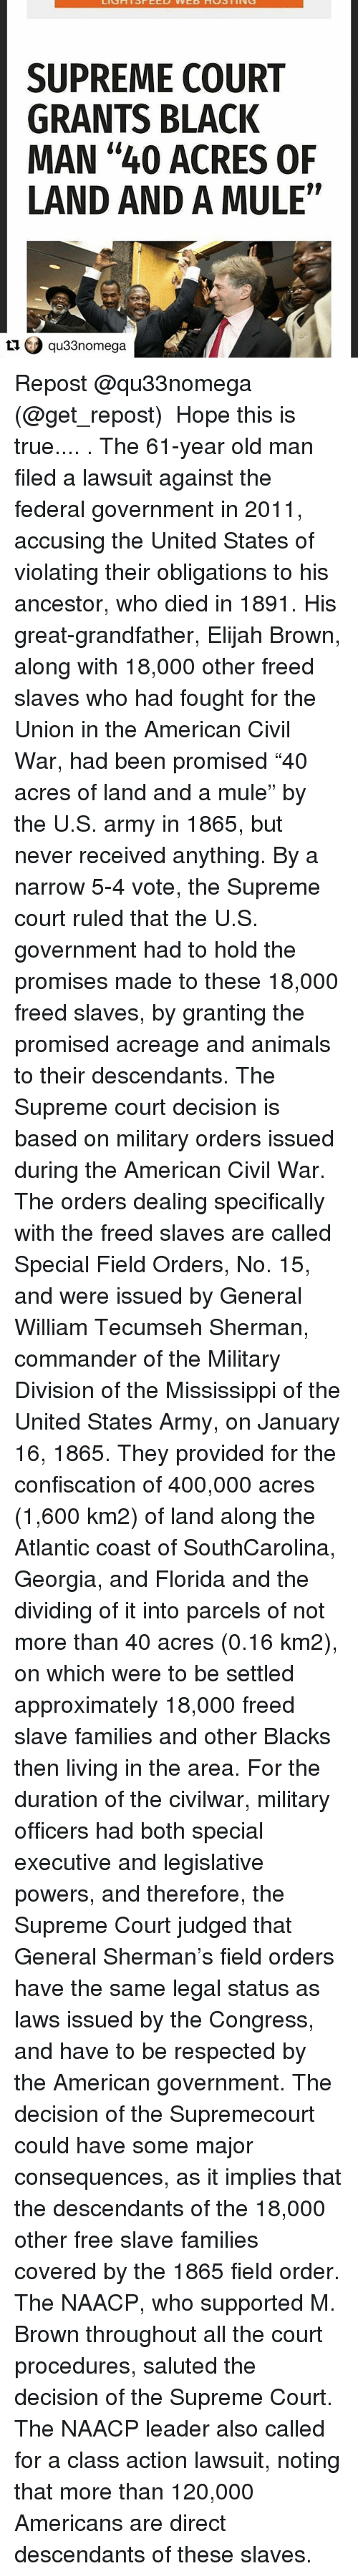 """William Tecumseh Sherman: SUPREME COURT  GRANTS BLACK  MAN """"40 ACRES OF  LAND AND A MULE""""  qu33nomega Repost @qu33nomega (@get_repost) ・・・ Hope this is true.... . The 61-year old man filed a lawsuit against the federal government in 2011, accusing the United States of violating their obligations to his ancestor, who died in 1891. His great-grandfather, Elijah Brown, along with 18,000 other freed slaves who had fought for the Union in the American Civil War, had been promised """"40 acres of land and a mule"""" by the U.S. army in 1865, but never received anything. By a narrow 5-4 vote, the Supreme court ruled that the U.S. government had to hold the promises made to these 18,000 freed slaves, by granting the promised acreage and animals to their descendants. The Supreme court decision is based on military orders issued during the American Civil War. The orders dealing specifically with the freed slaves are called Special Field Orders, No. 15, and were issued by General William Tecumseh Sherman, commander of the Military Division of the Mississippi of the United States Army, on January 16, 1865. They provided for the confiscation of 400,000 acres (1,600 km2) of land along the Atlantic coast of SouthCarolina, Georgia, and Florida and the dividing of it into parcels of not more than 40 acres (0.16 km2), on which were to be settled approximately 18,000 freed slave families and other Blacks then living in the area. For the duration of the civilwar, military officers had both special executive and legislative powers, and therefore, the Supreme Court judged that General Sherman's field orders have the same legal status as laws issued by the Congress, and have to be respected by the American government. The decision of the Supremecourt could have some major consequences, as it implies that the descendants of the 18,000 other free slave families covered by the 1865 field order. The NAACP, who supported M. Brown throughout all the court procedures, saluted the decision of the Supre"""